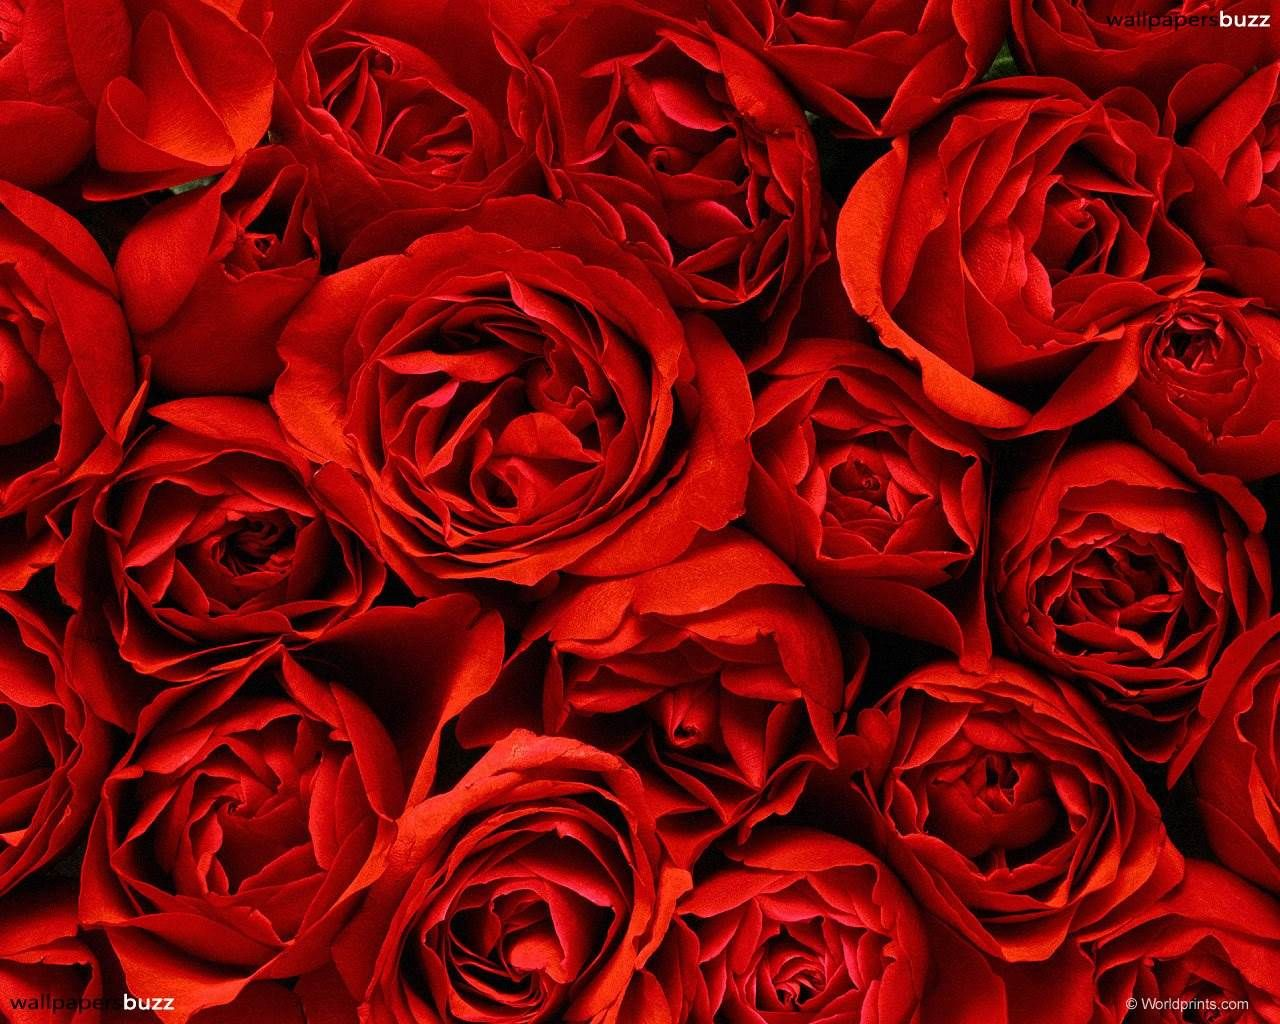 beautiful red rose wallpapers 1920×1080 images roses | adorable